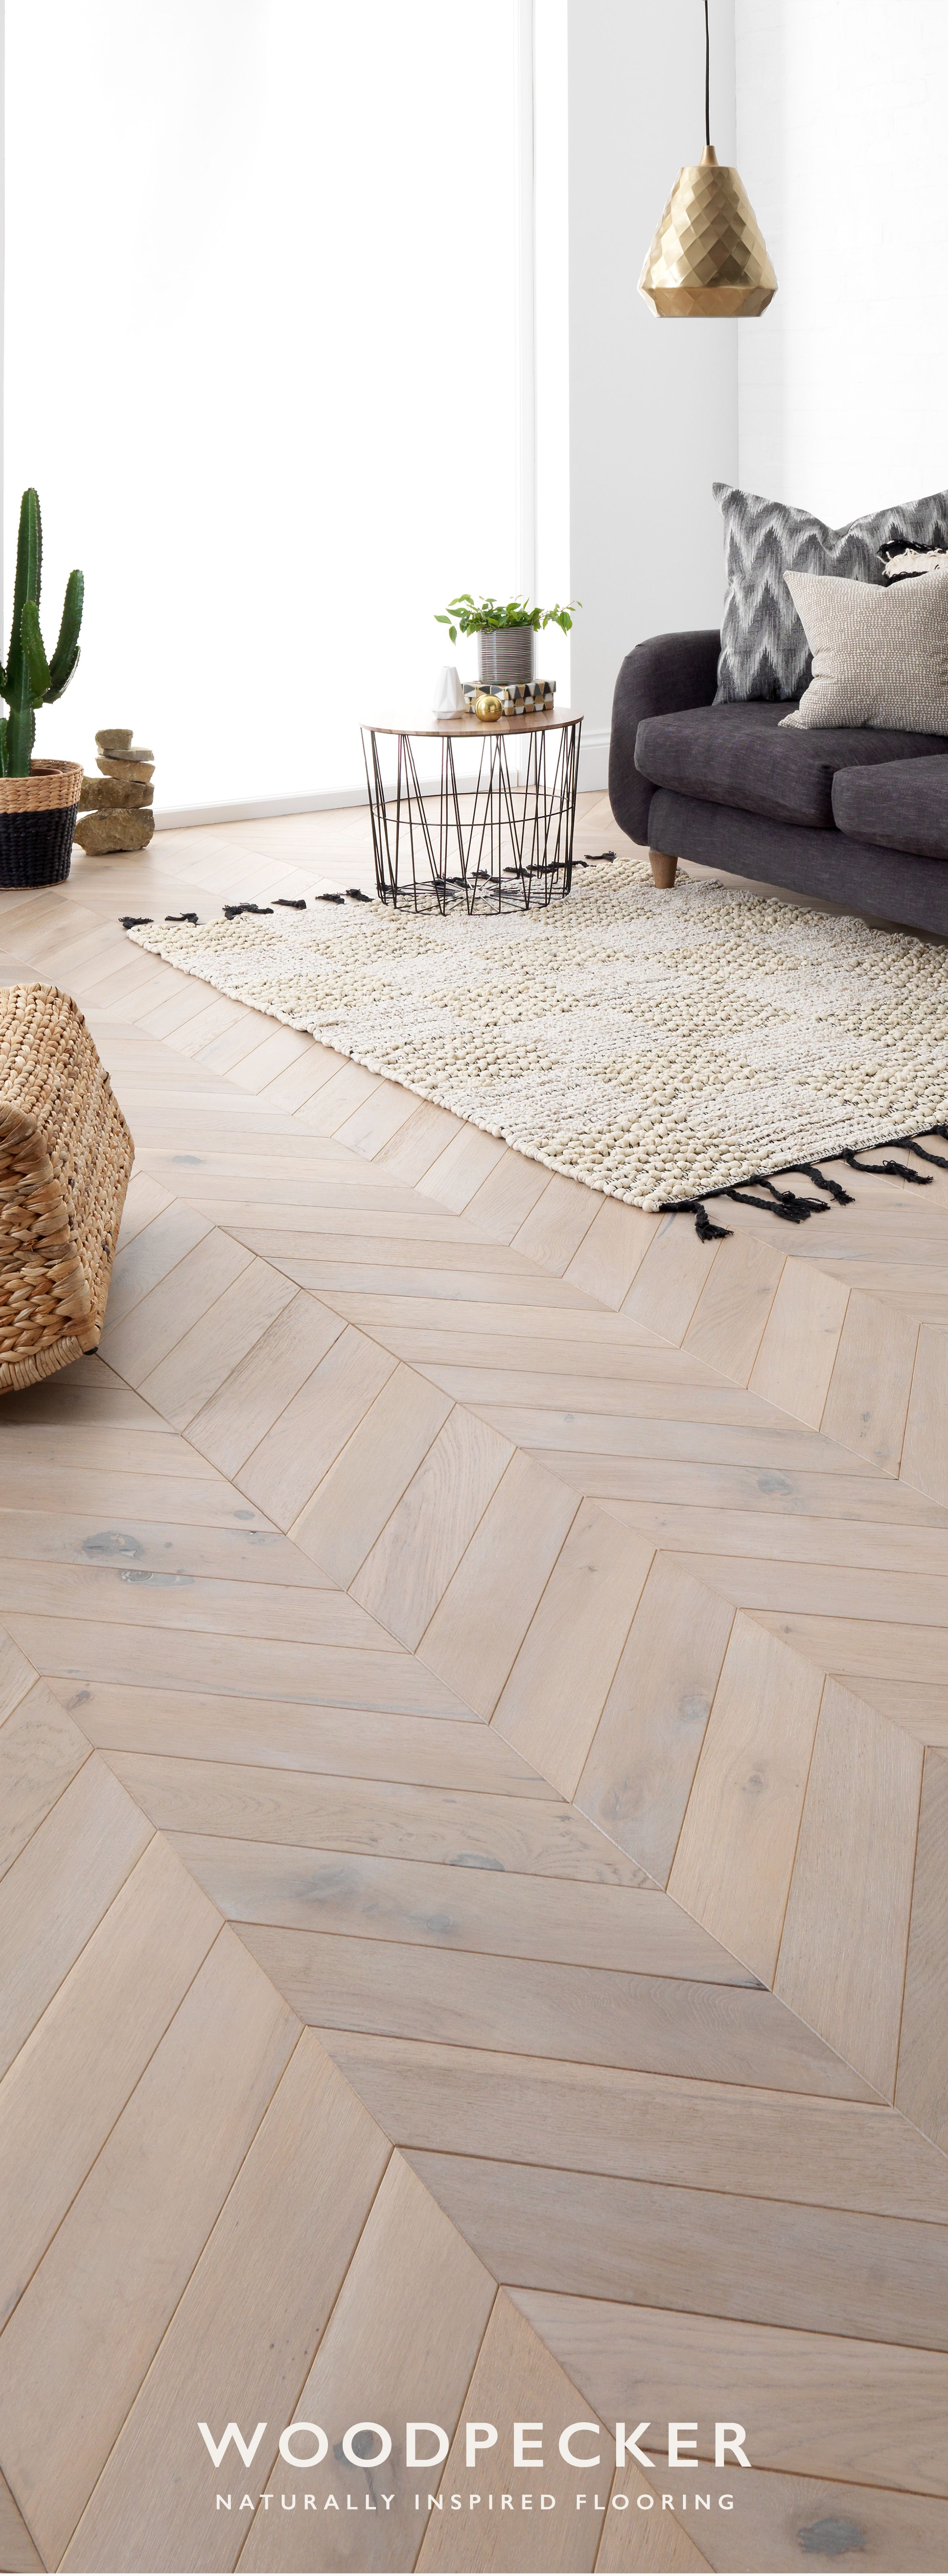 Take A Closer Look And Discover Your Dream Floor With Free Flooring Samples Order From Our Website And We Ll Pop Them In T Room Flooring Flooring Floor Design